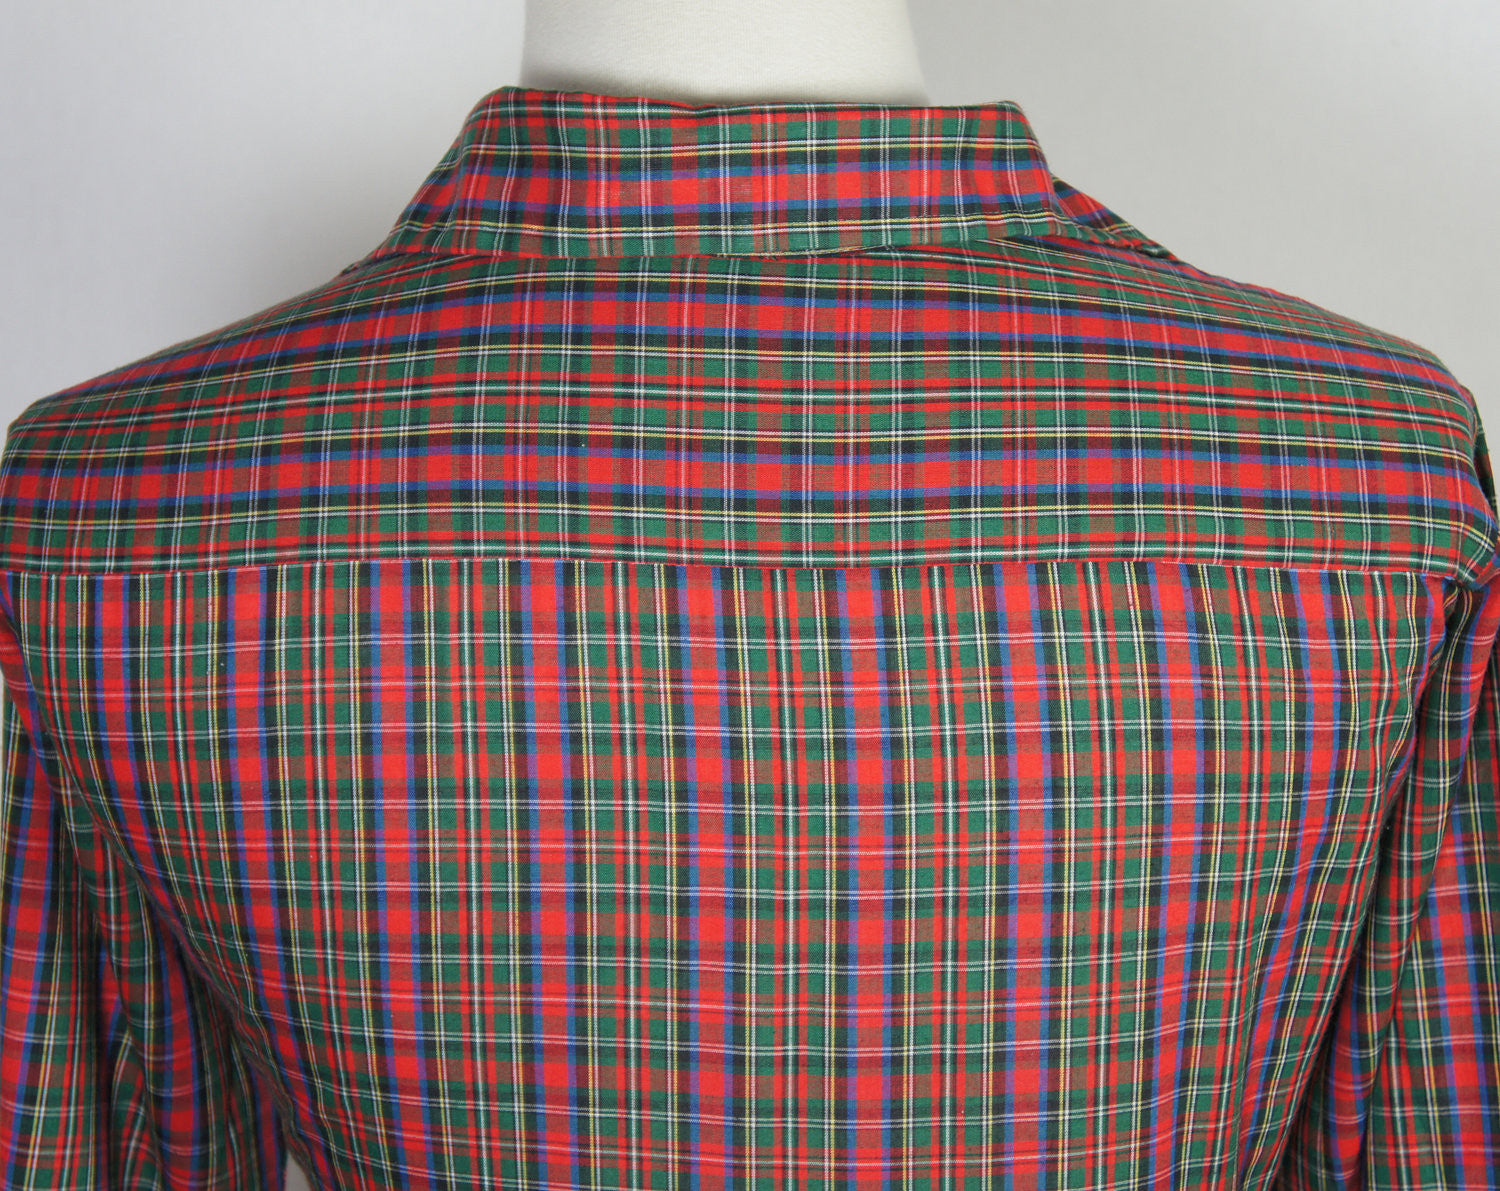 1970's Red & Green Button Up Shirt - Long Sleeve, Size L